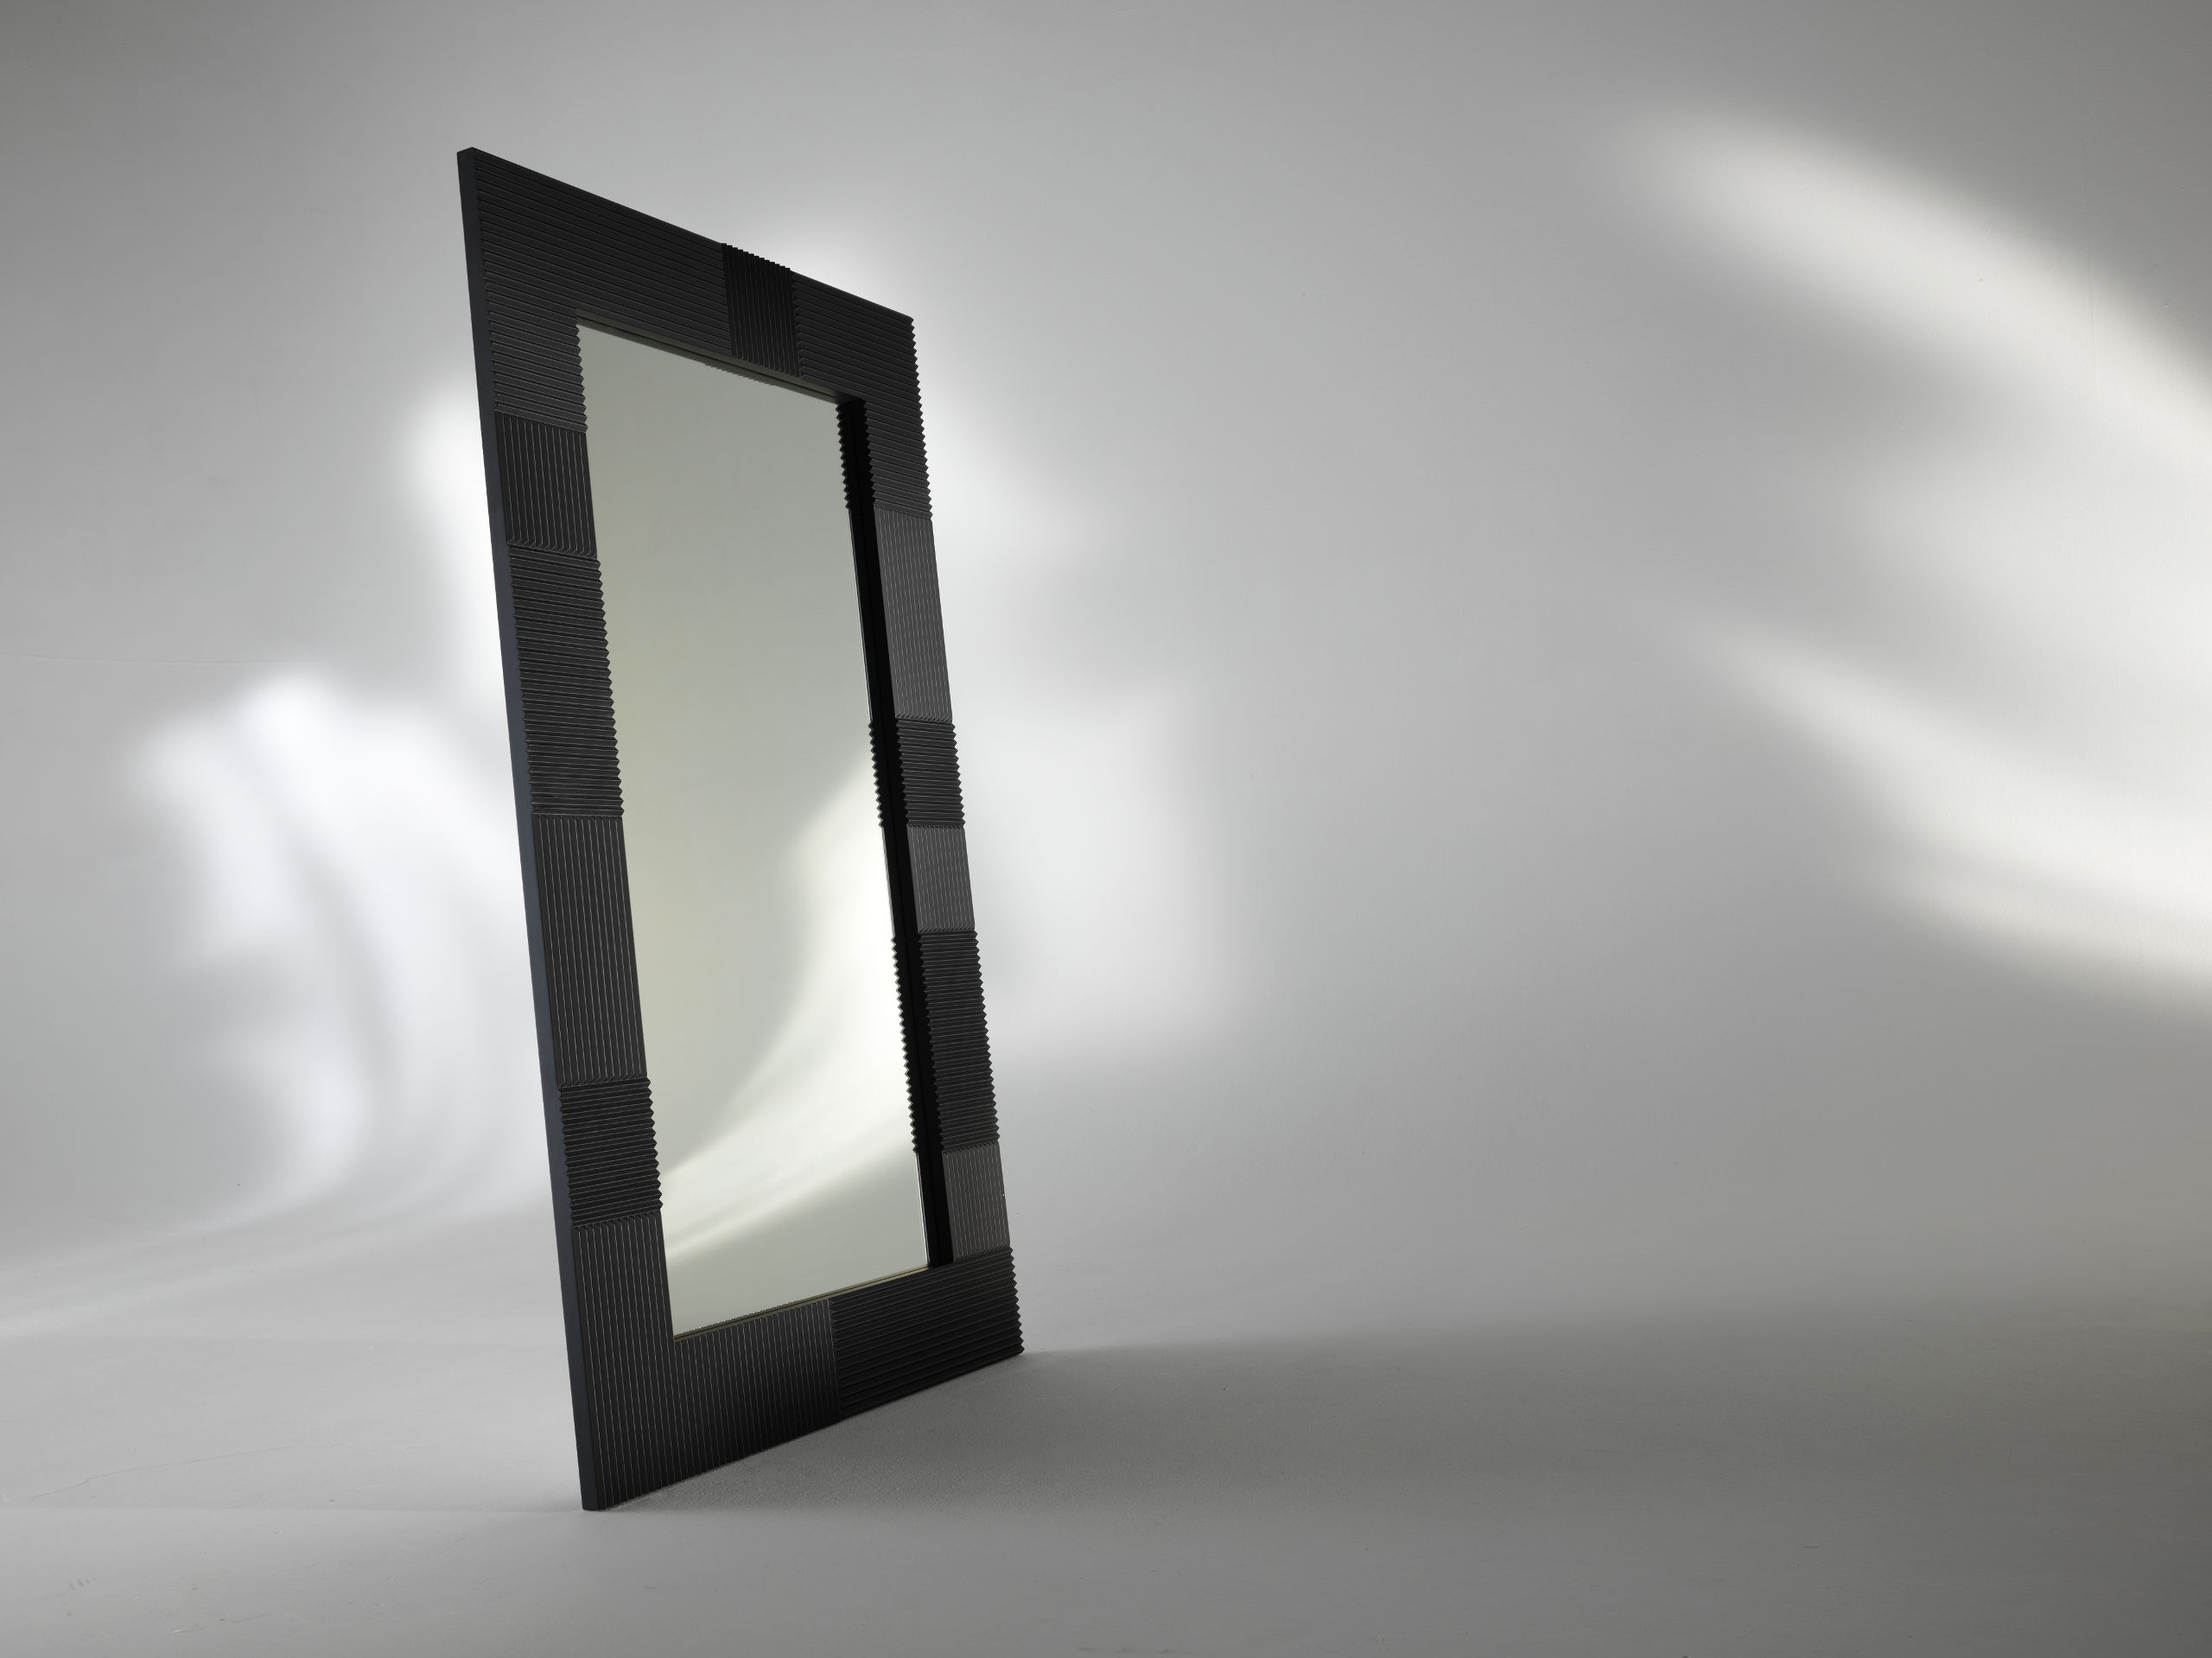 Albedo Design ALBEDO_2 mirror with MDF support lacquered gold, black or white satin.